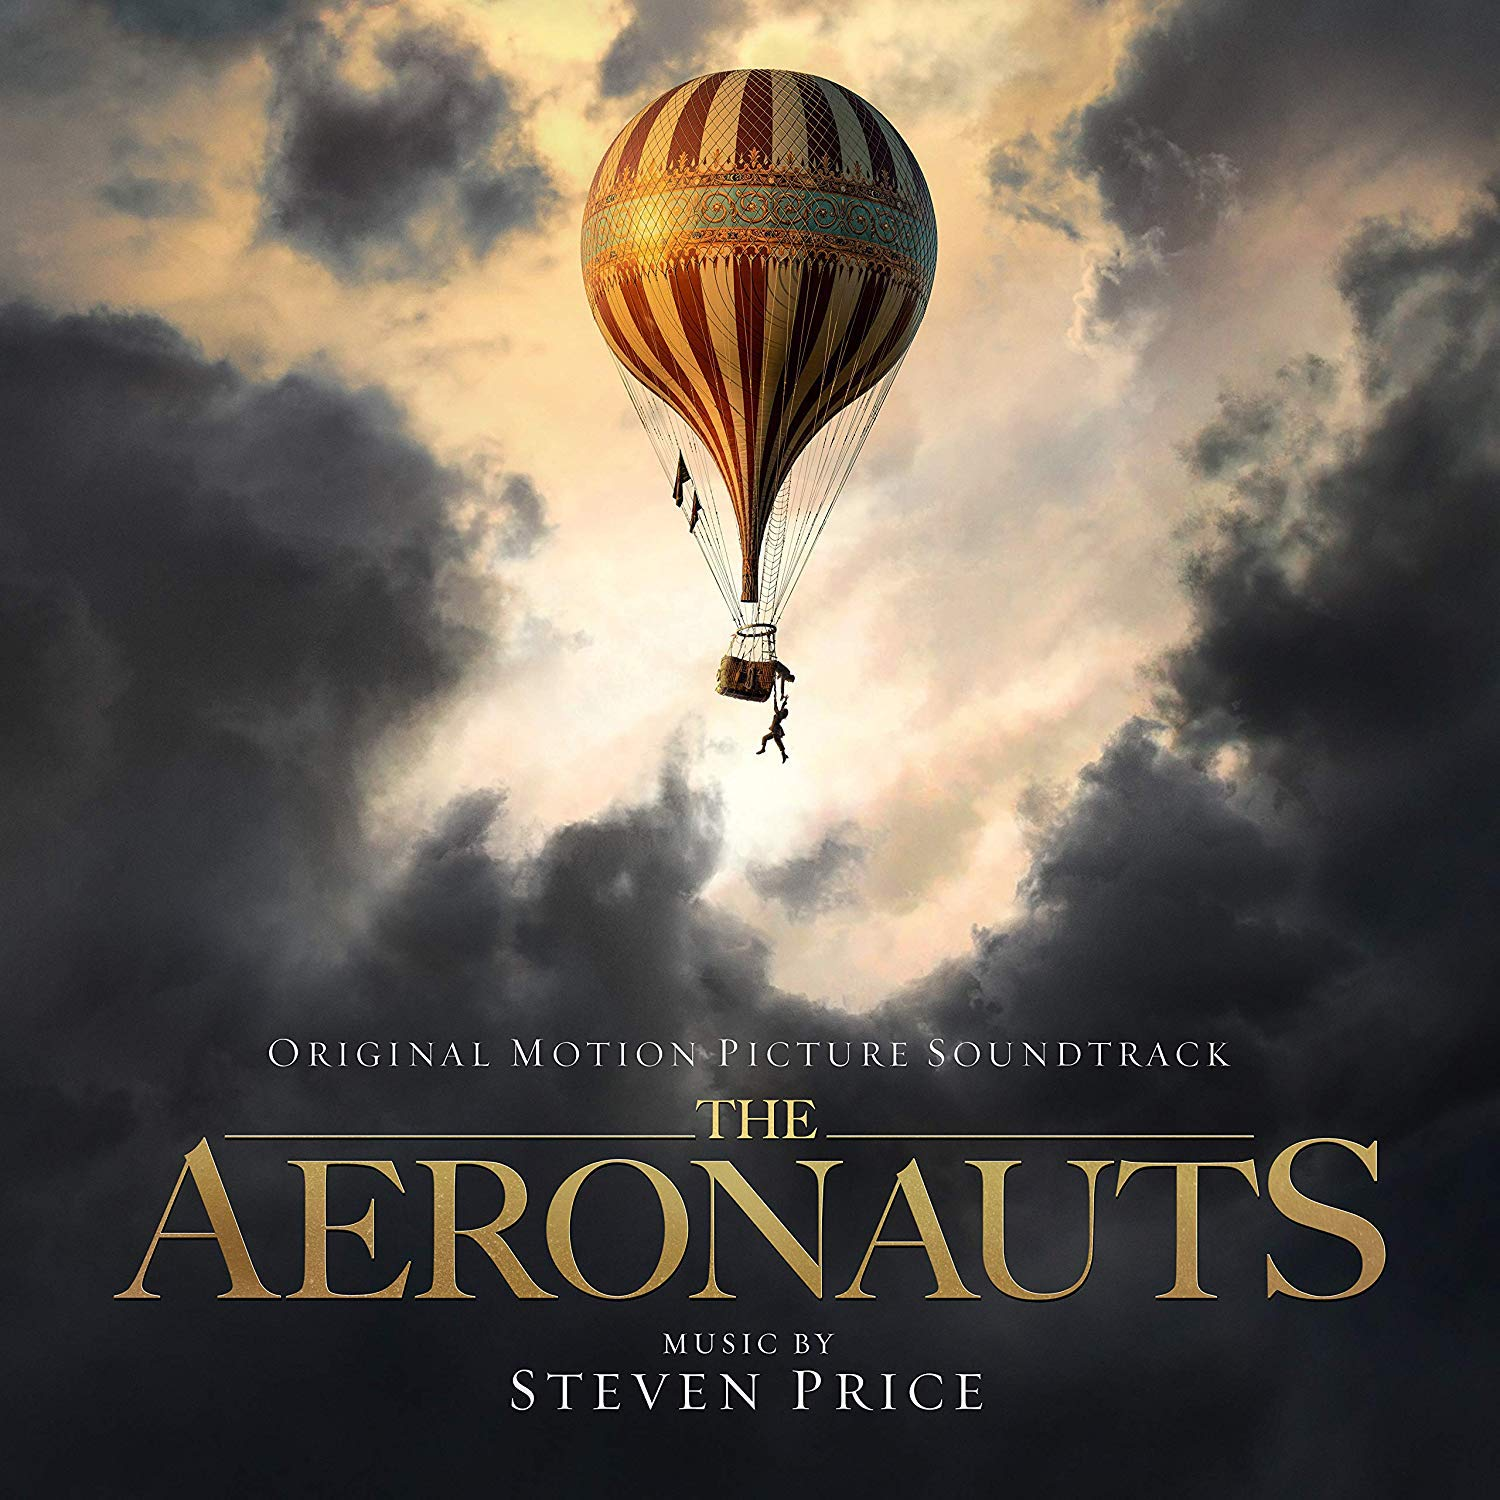 Steven Price - The Aeronauts (Original Motion Picture Soundtrack) [2 LP]